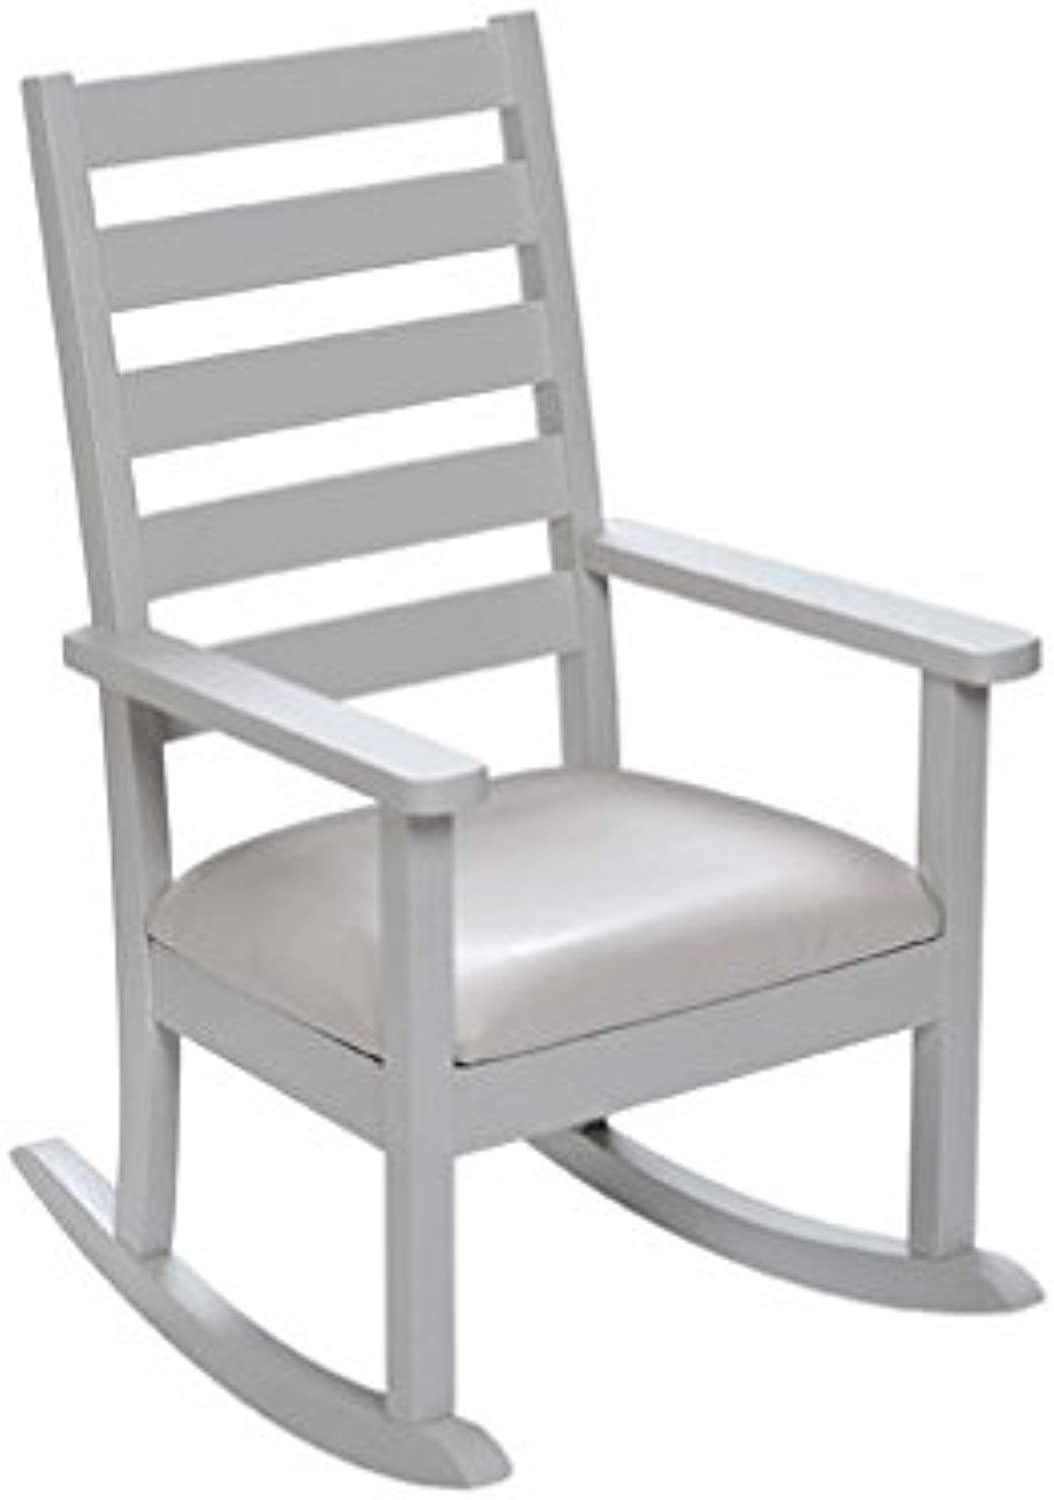 Giftmark Kids White Chair with Upholstered Seat (Matches Set 23005E), One Size, White